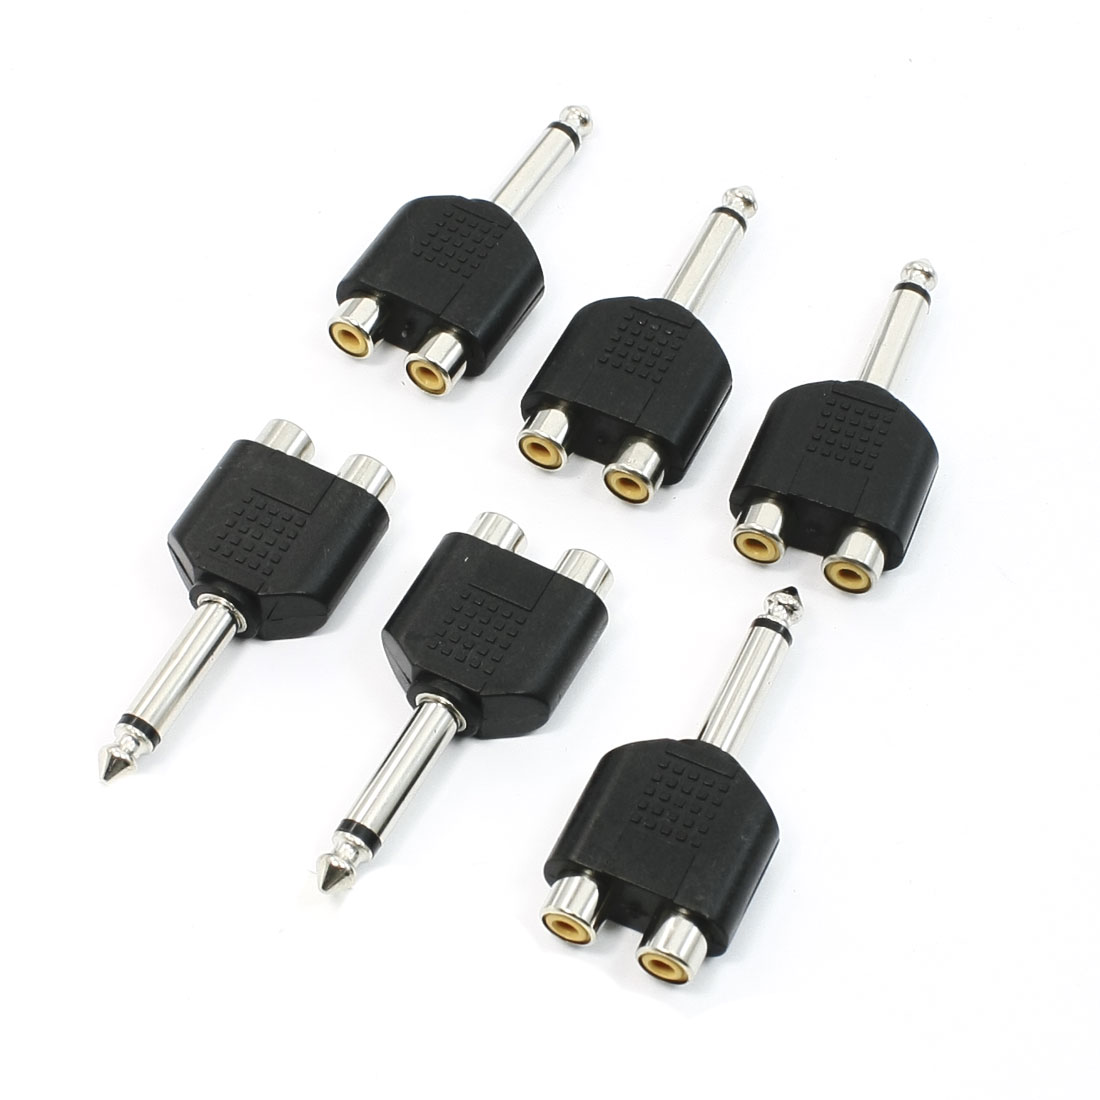 6 x Staight Shape 6.35mm Mono Audio Male Plug to 2 RCA Female Jack Adapters